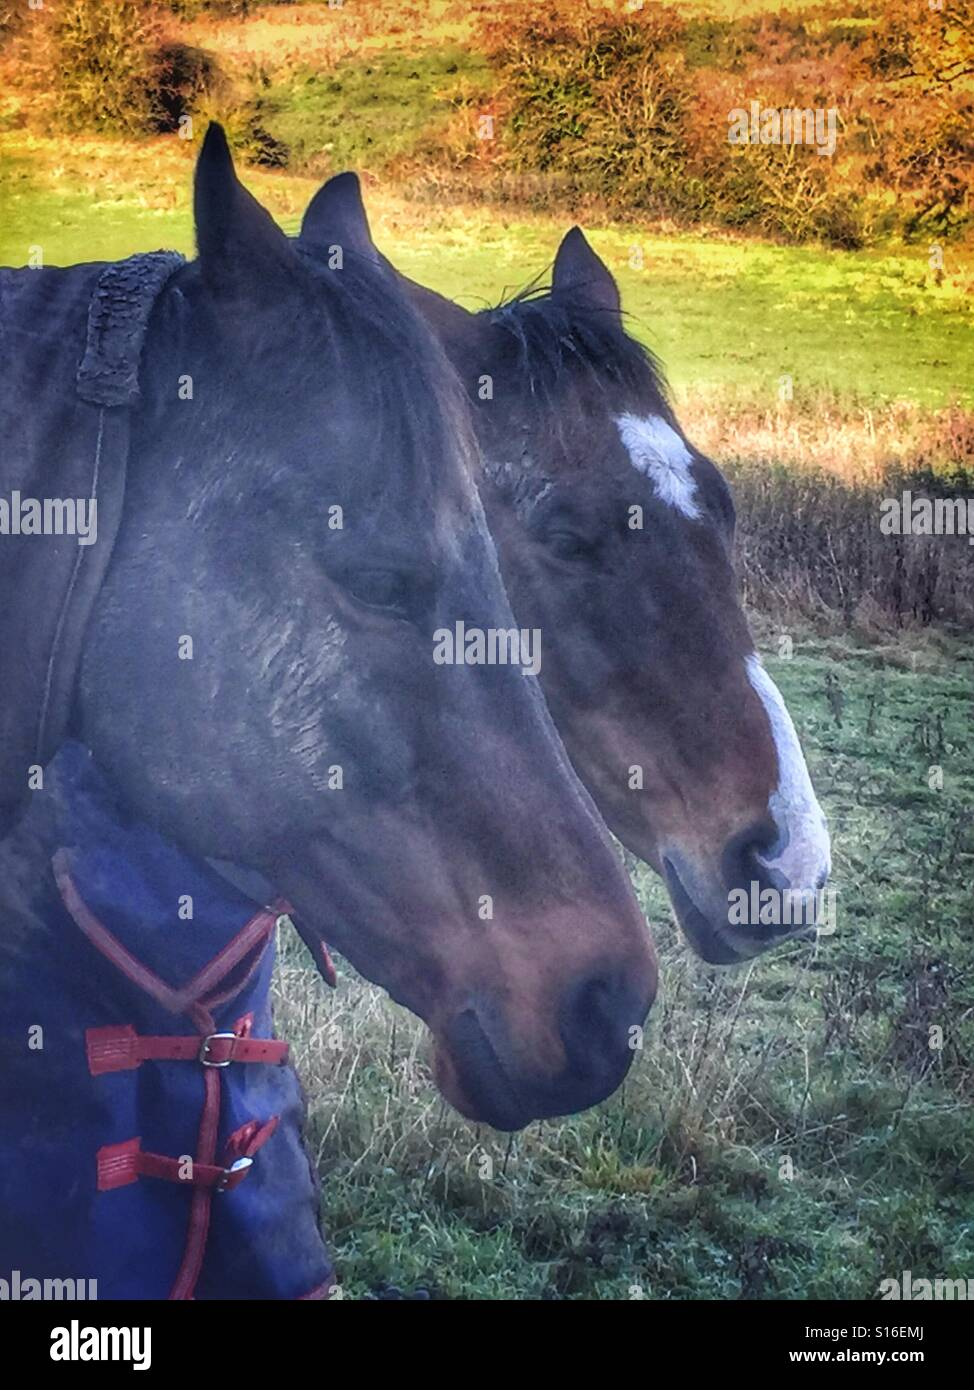 Horses in winter blankets keeping warm in the brisk Autumn  air - Stock Image